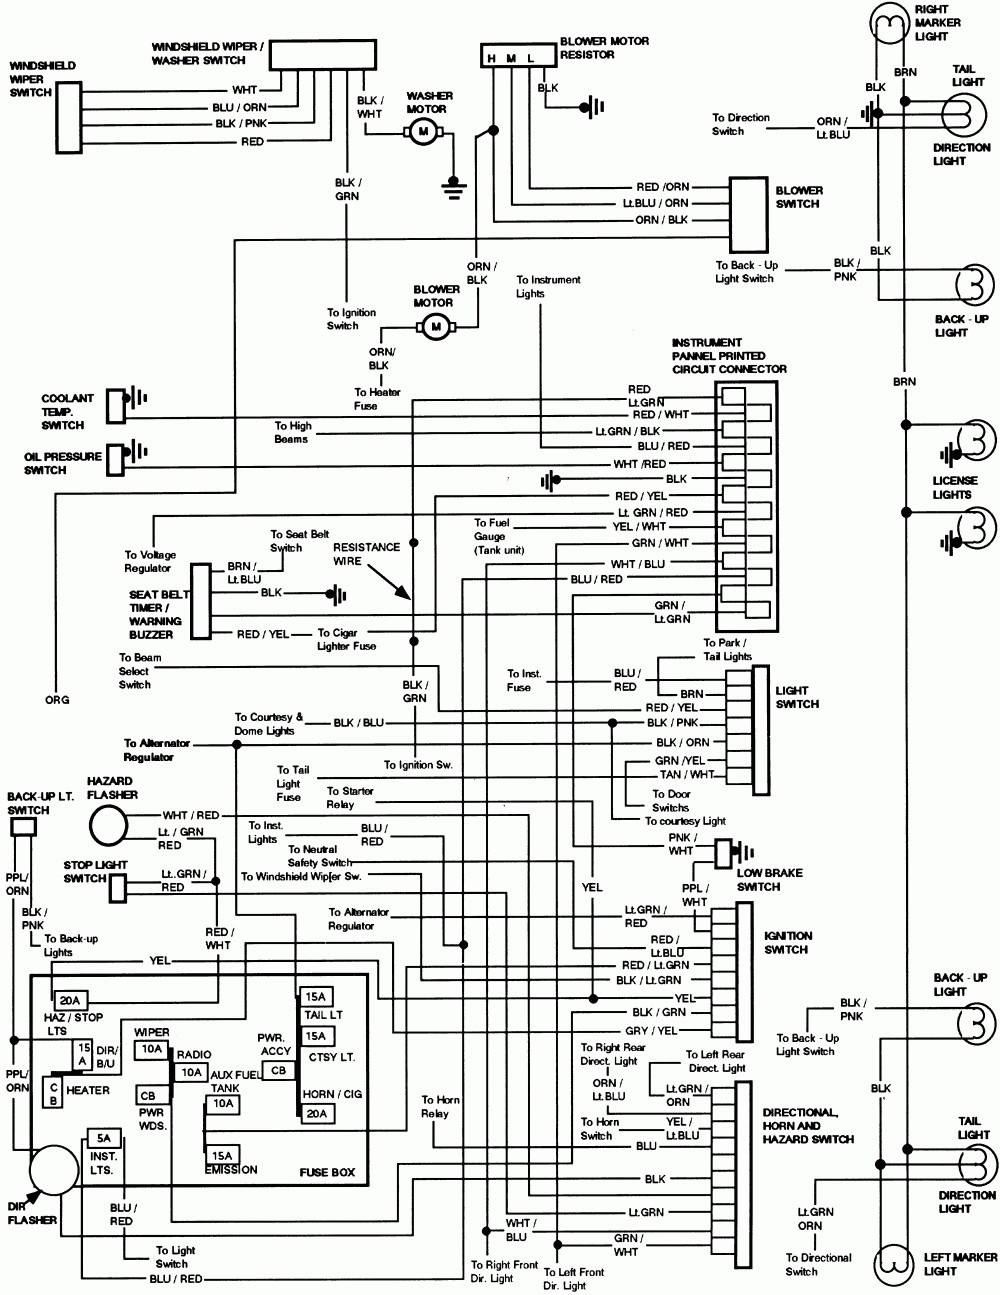 medium resolution of 87 ford ignition system wiring diagram wiring diagram paper 1987 ford e250 wiring diagram wiring diagram